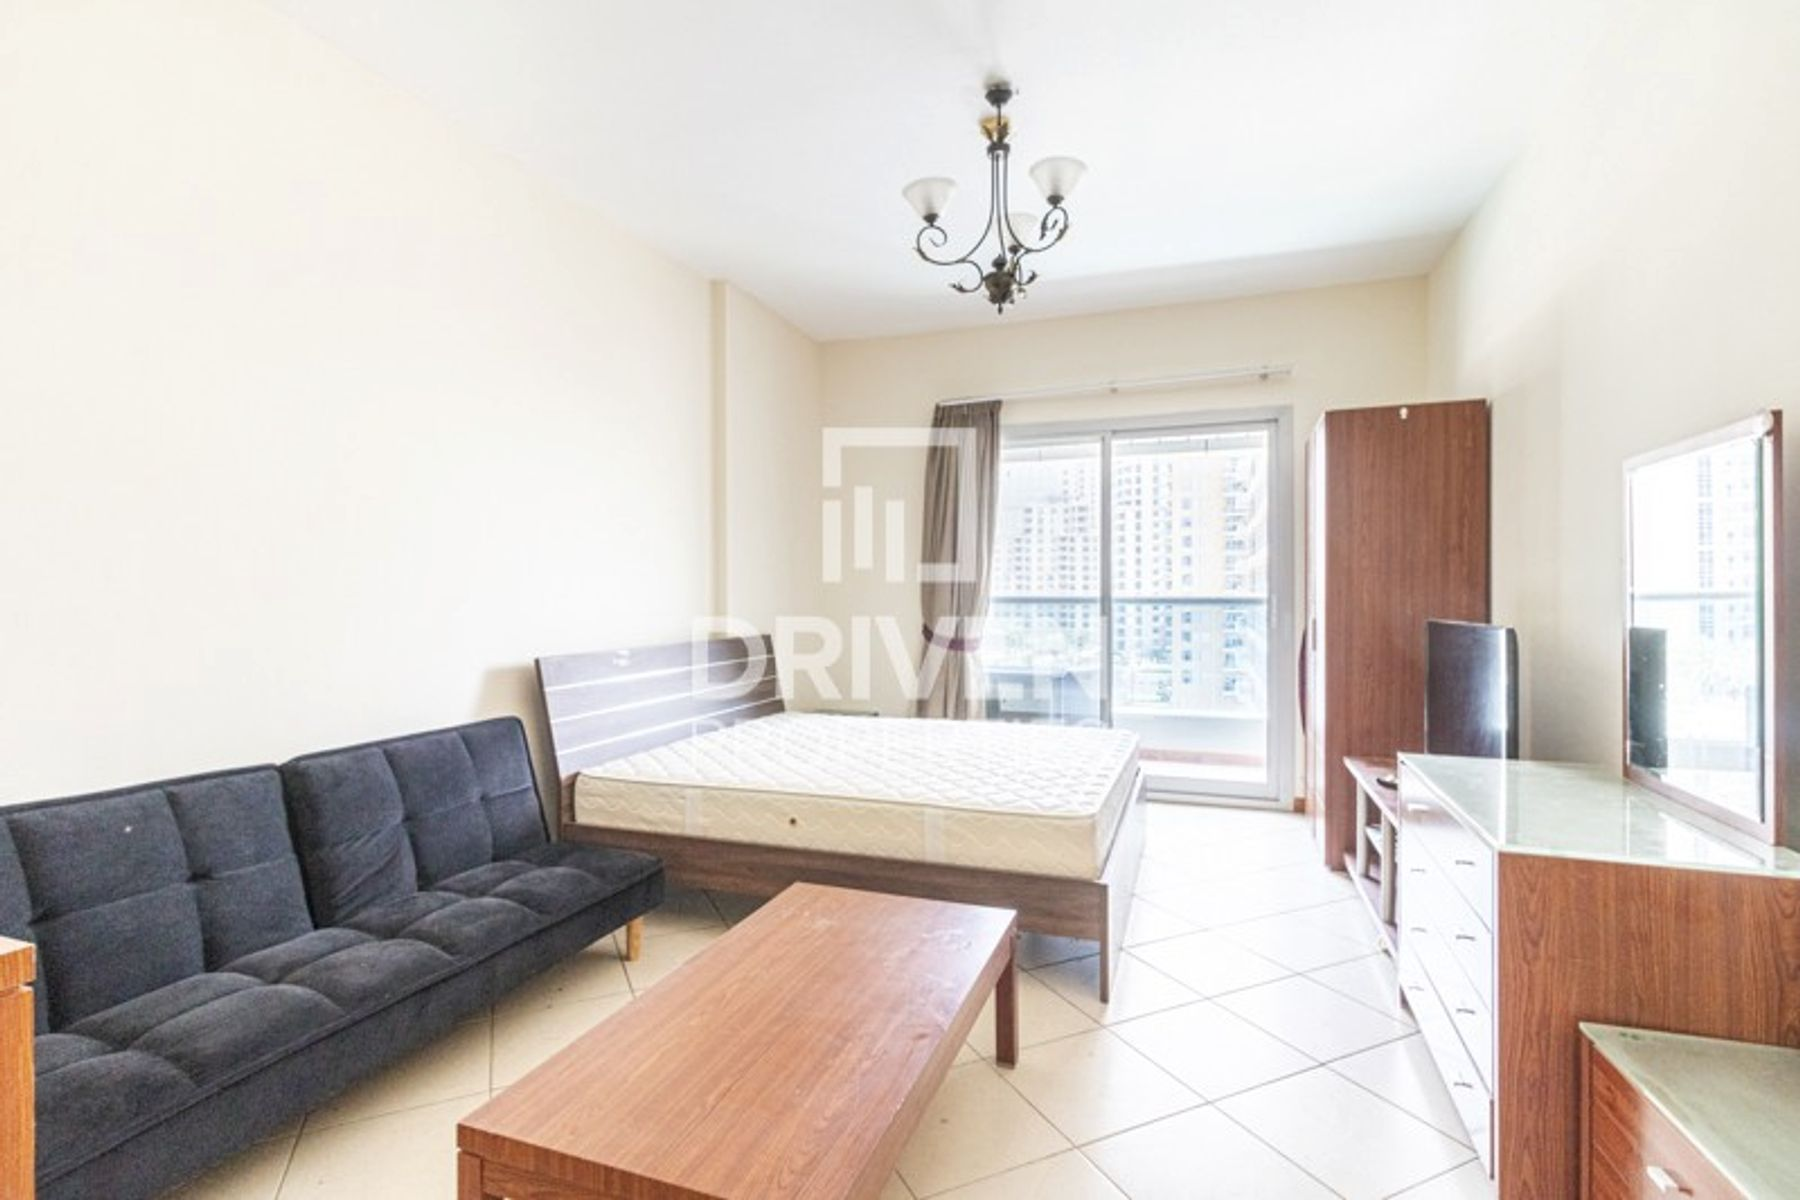 Stunning Studio Apartment, Next to Metro